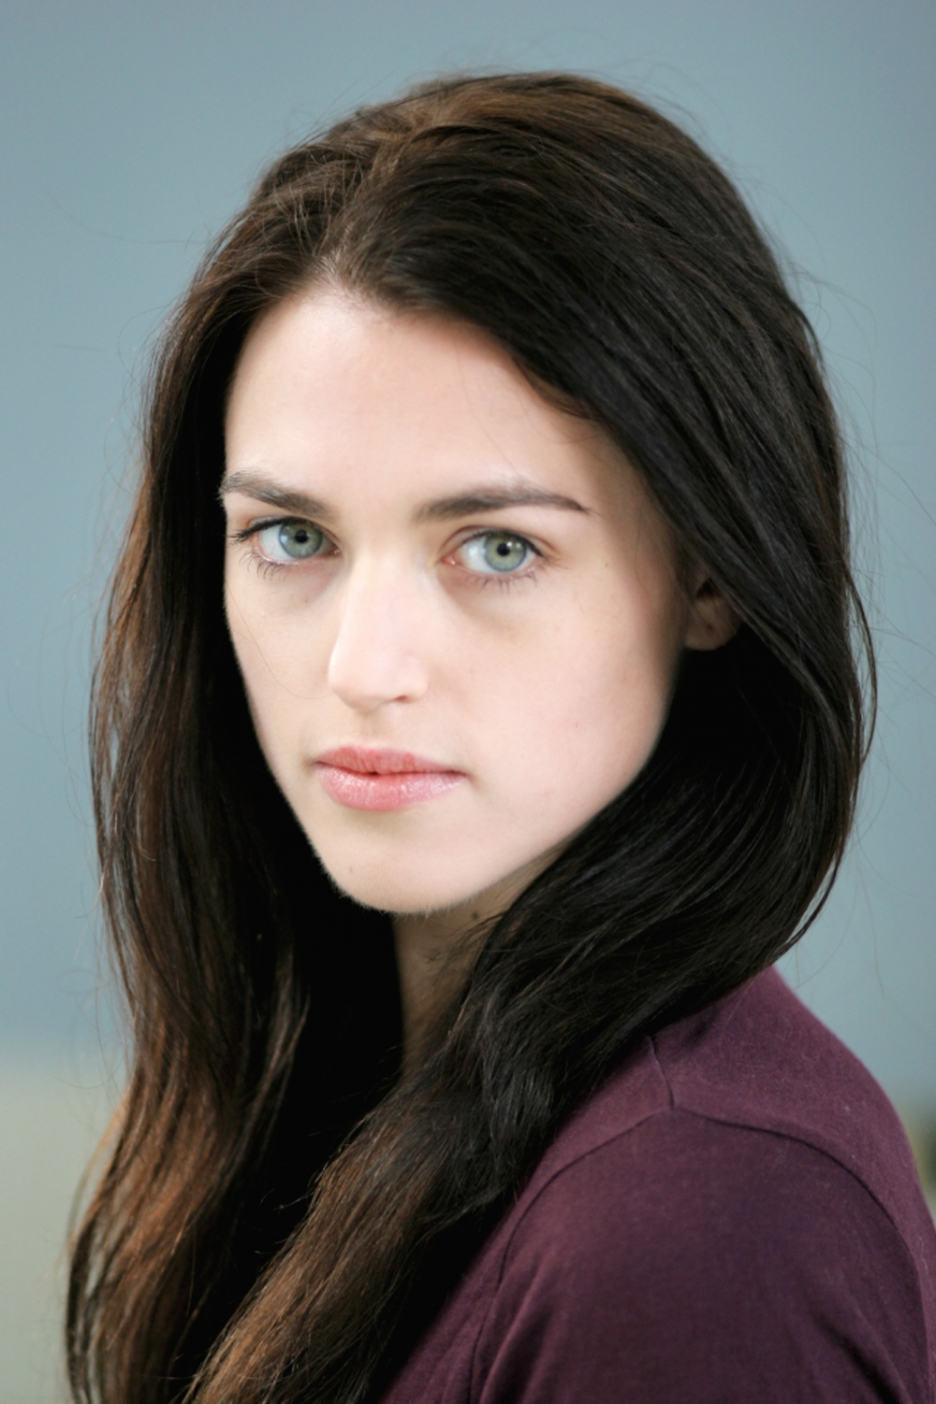 katie-mcgrath.jpg